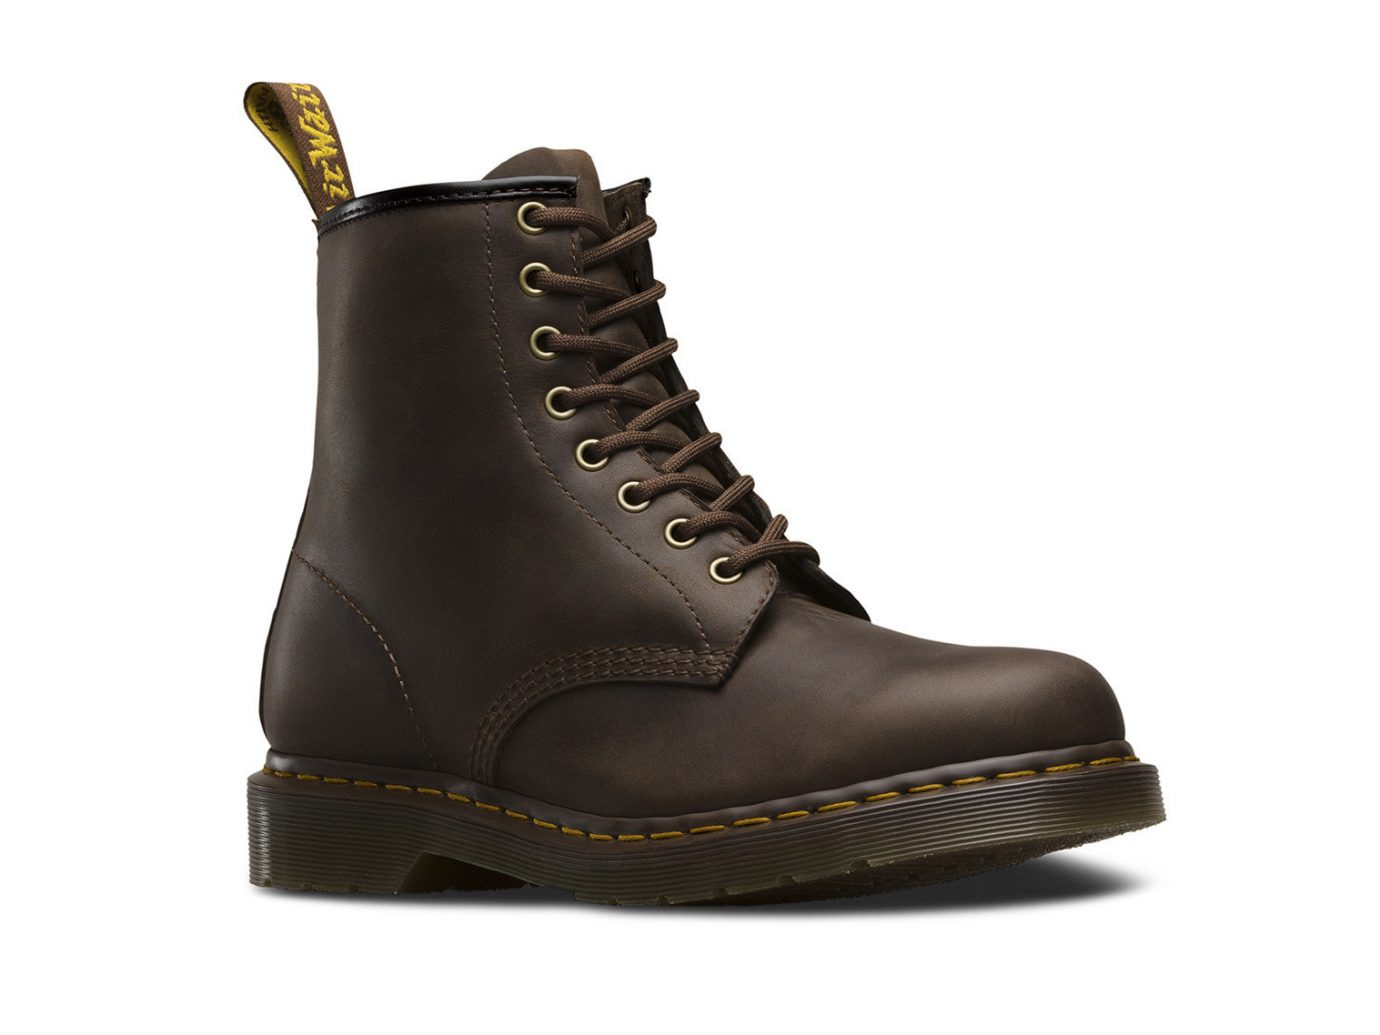 Style + Design Travel Shop footwear boot brown shoe work boots outdoor shoe product walking shoe leather